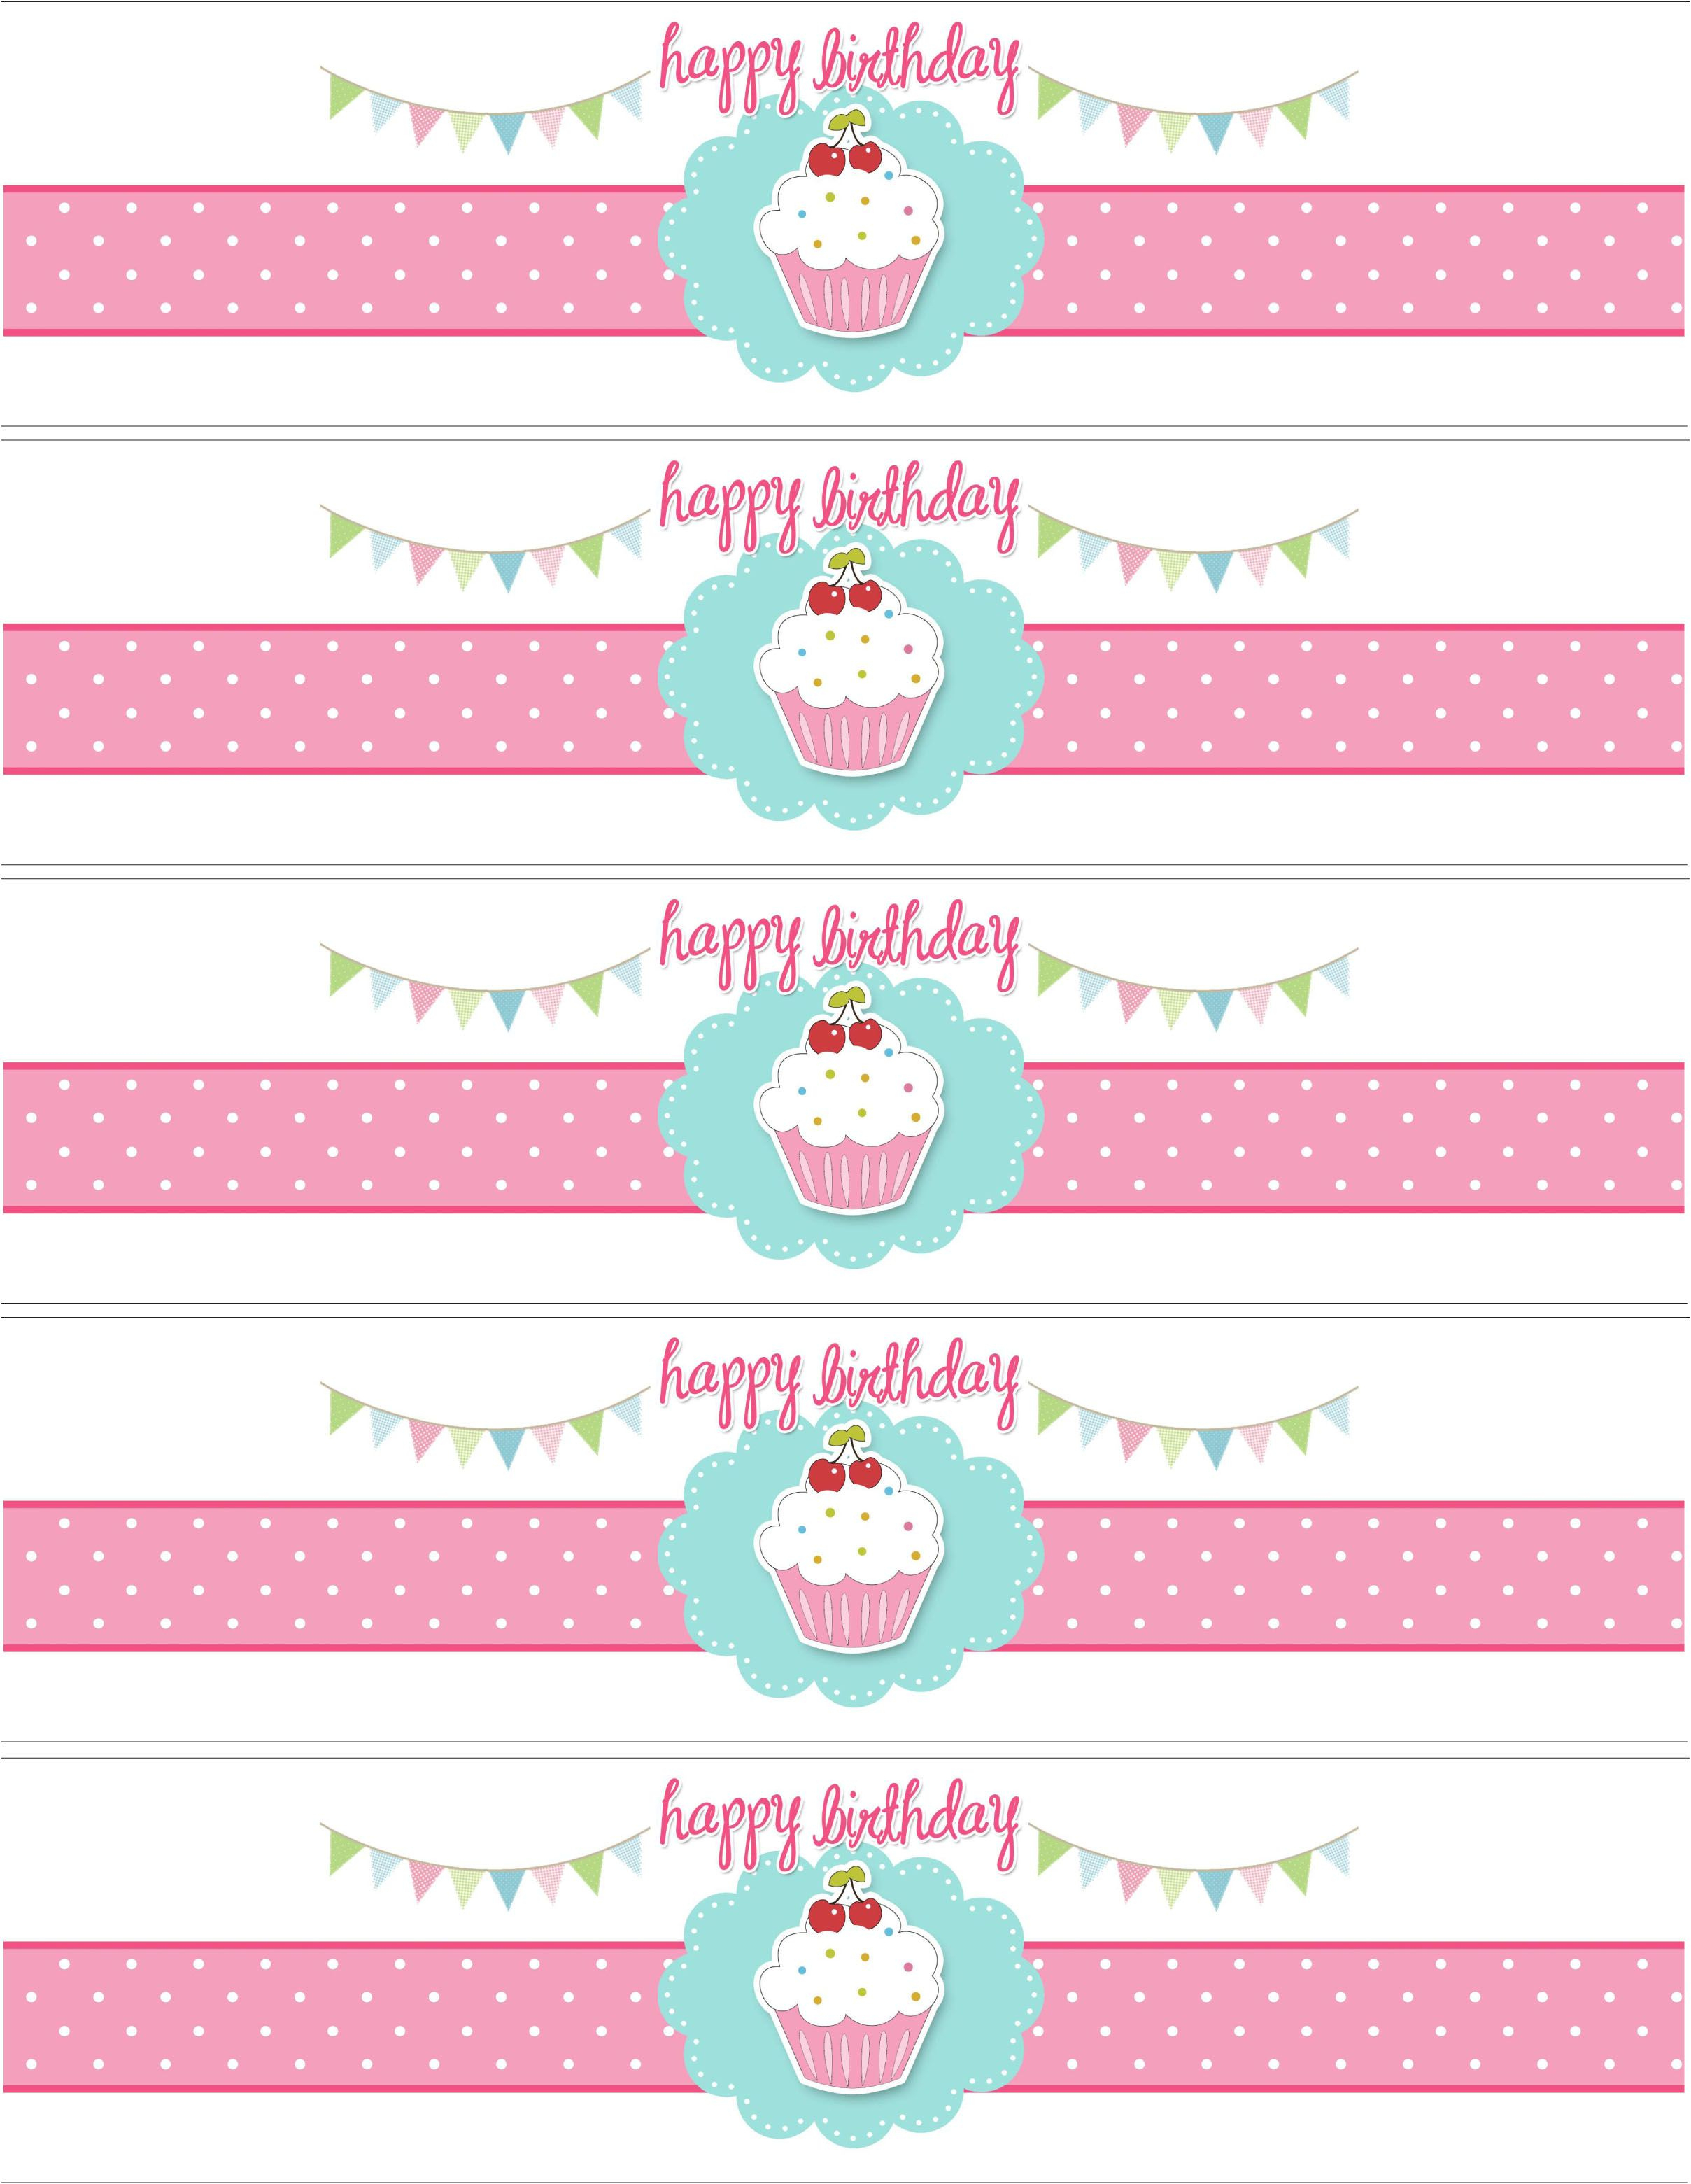 Cupcake Birthday Party With Free Printables | Diy Birthday Party - Free Printable Labels For Bottles